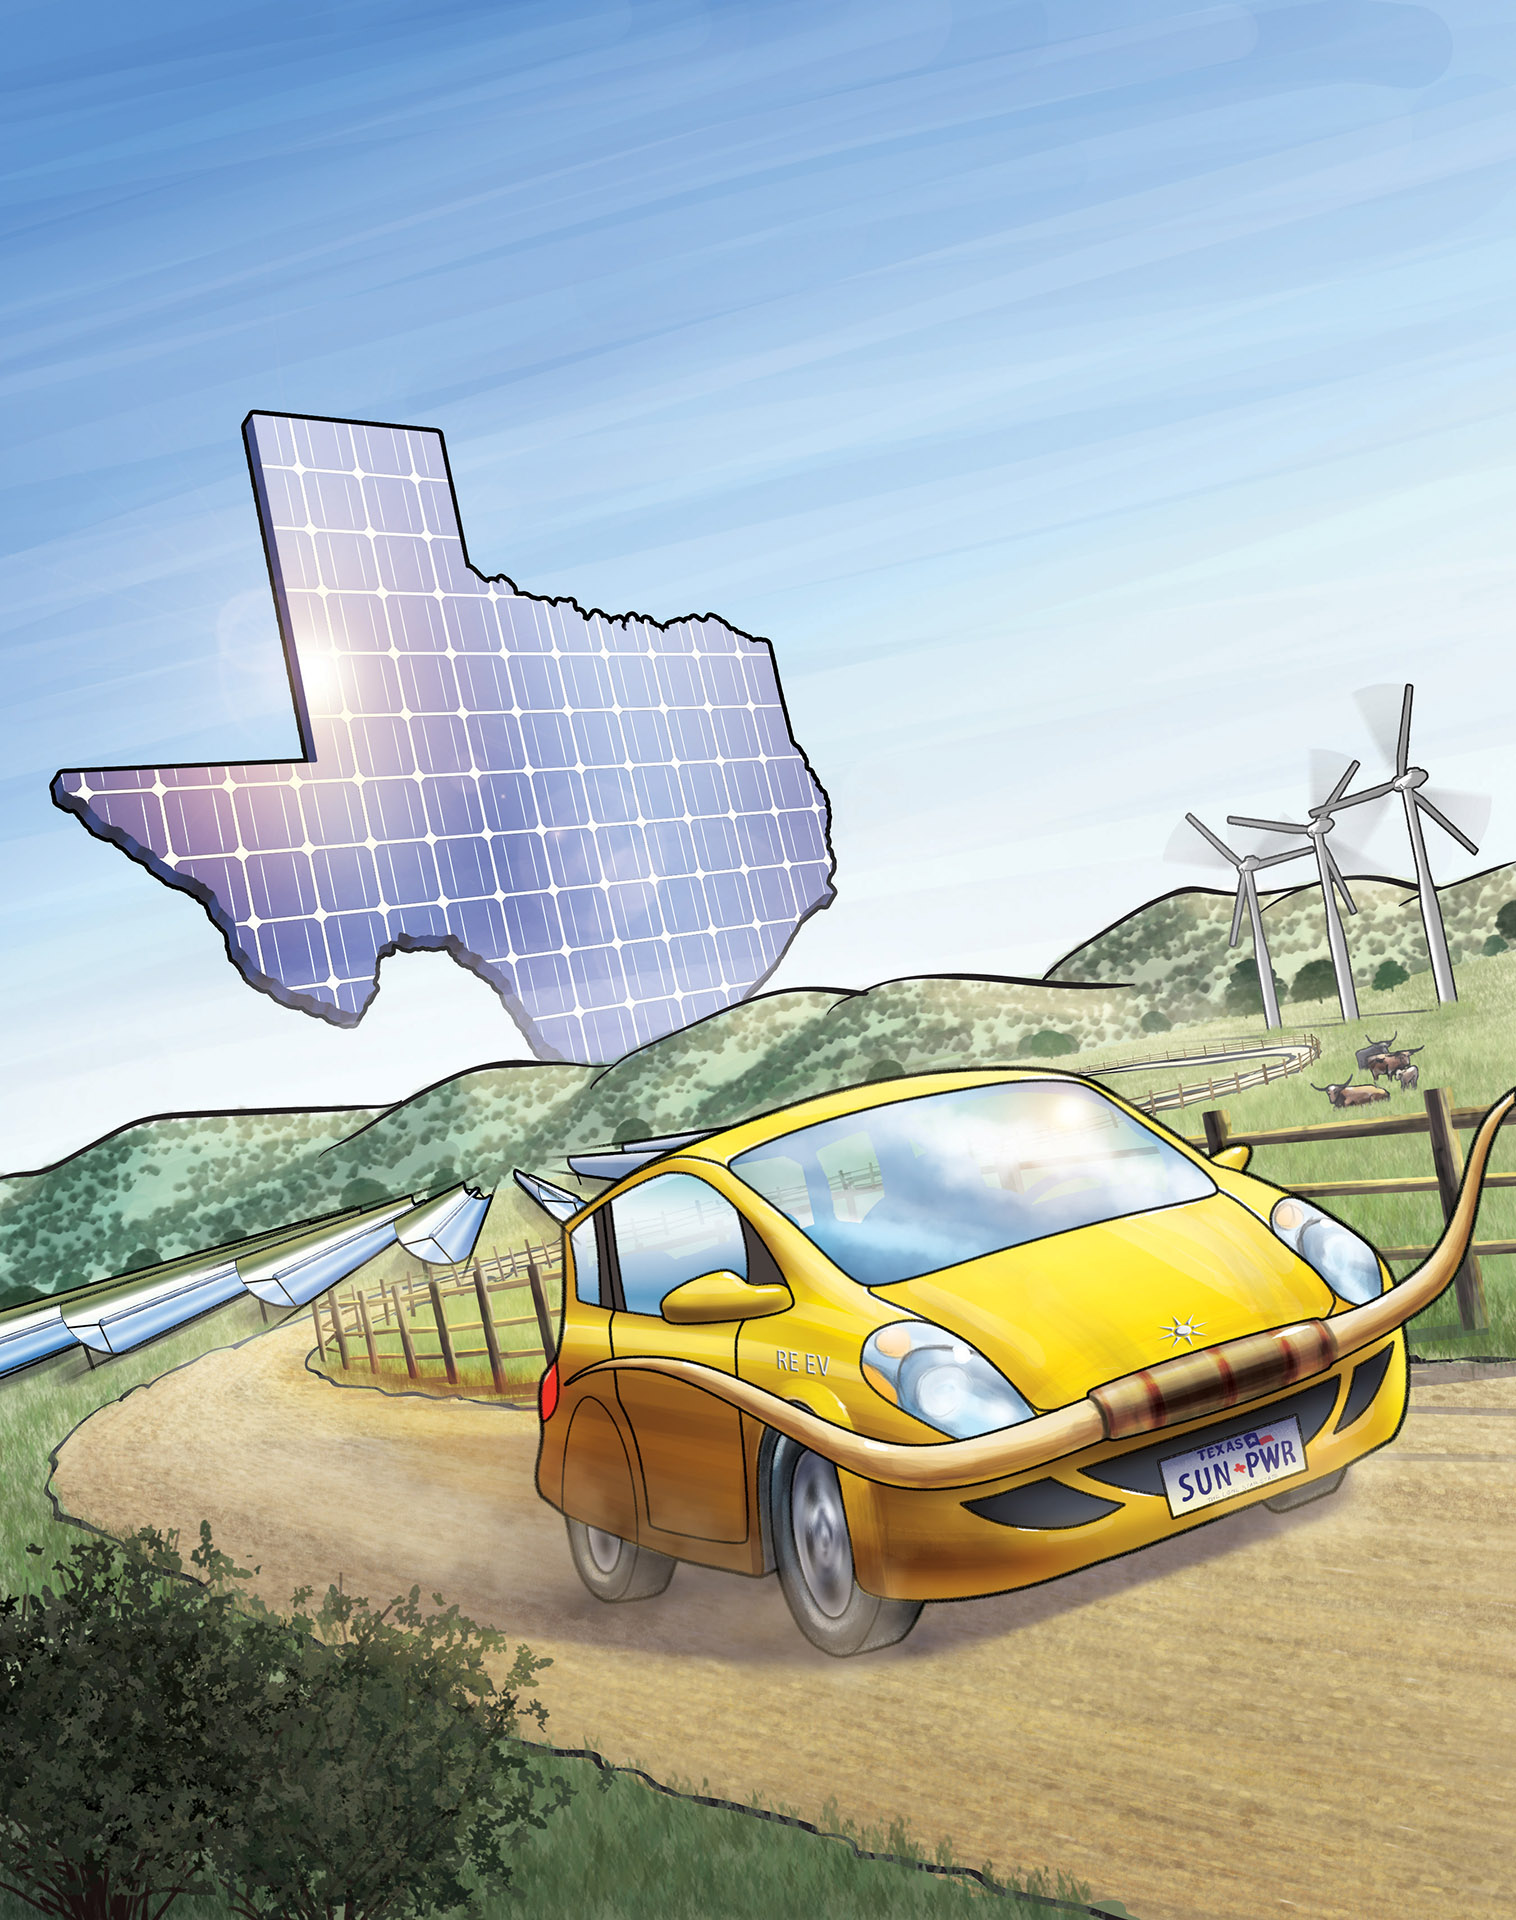 Solar Power in Texas Magazine Cover